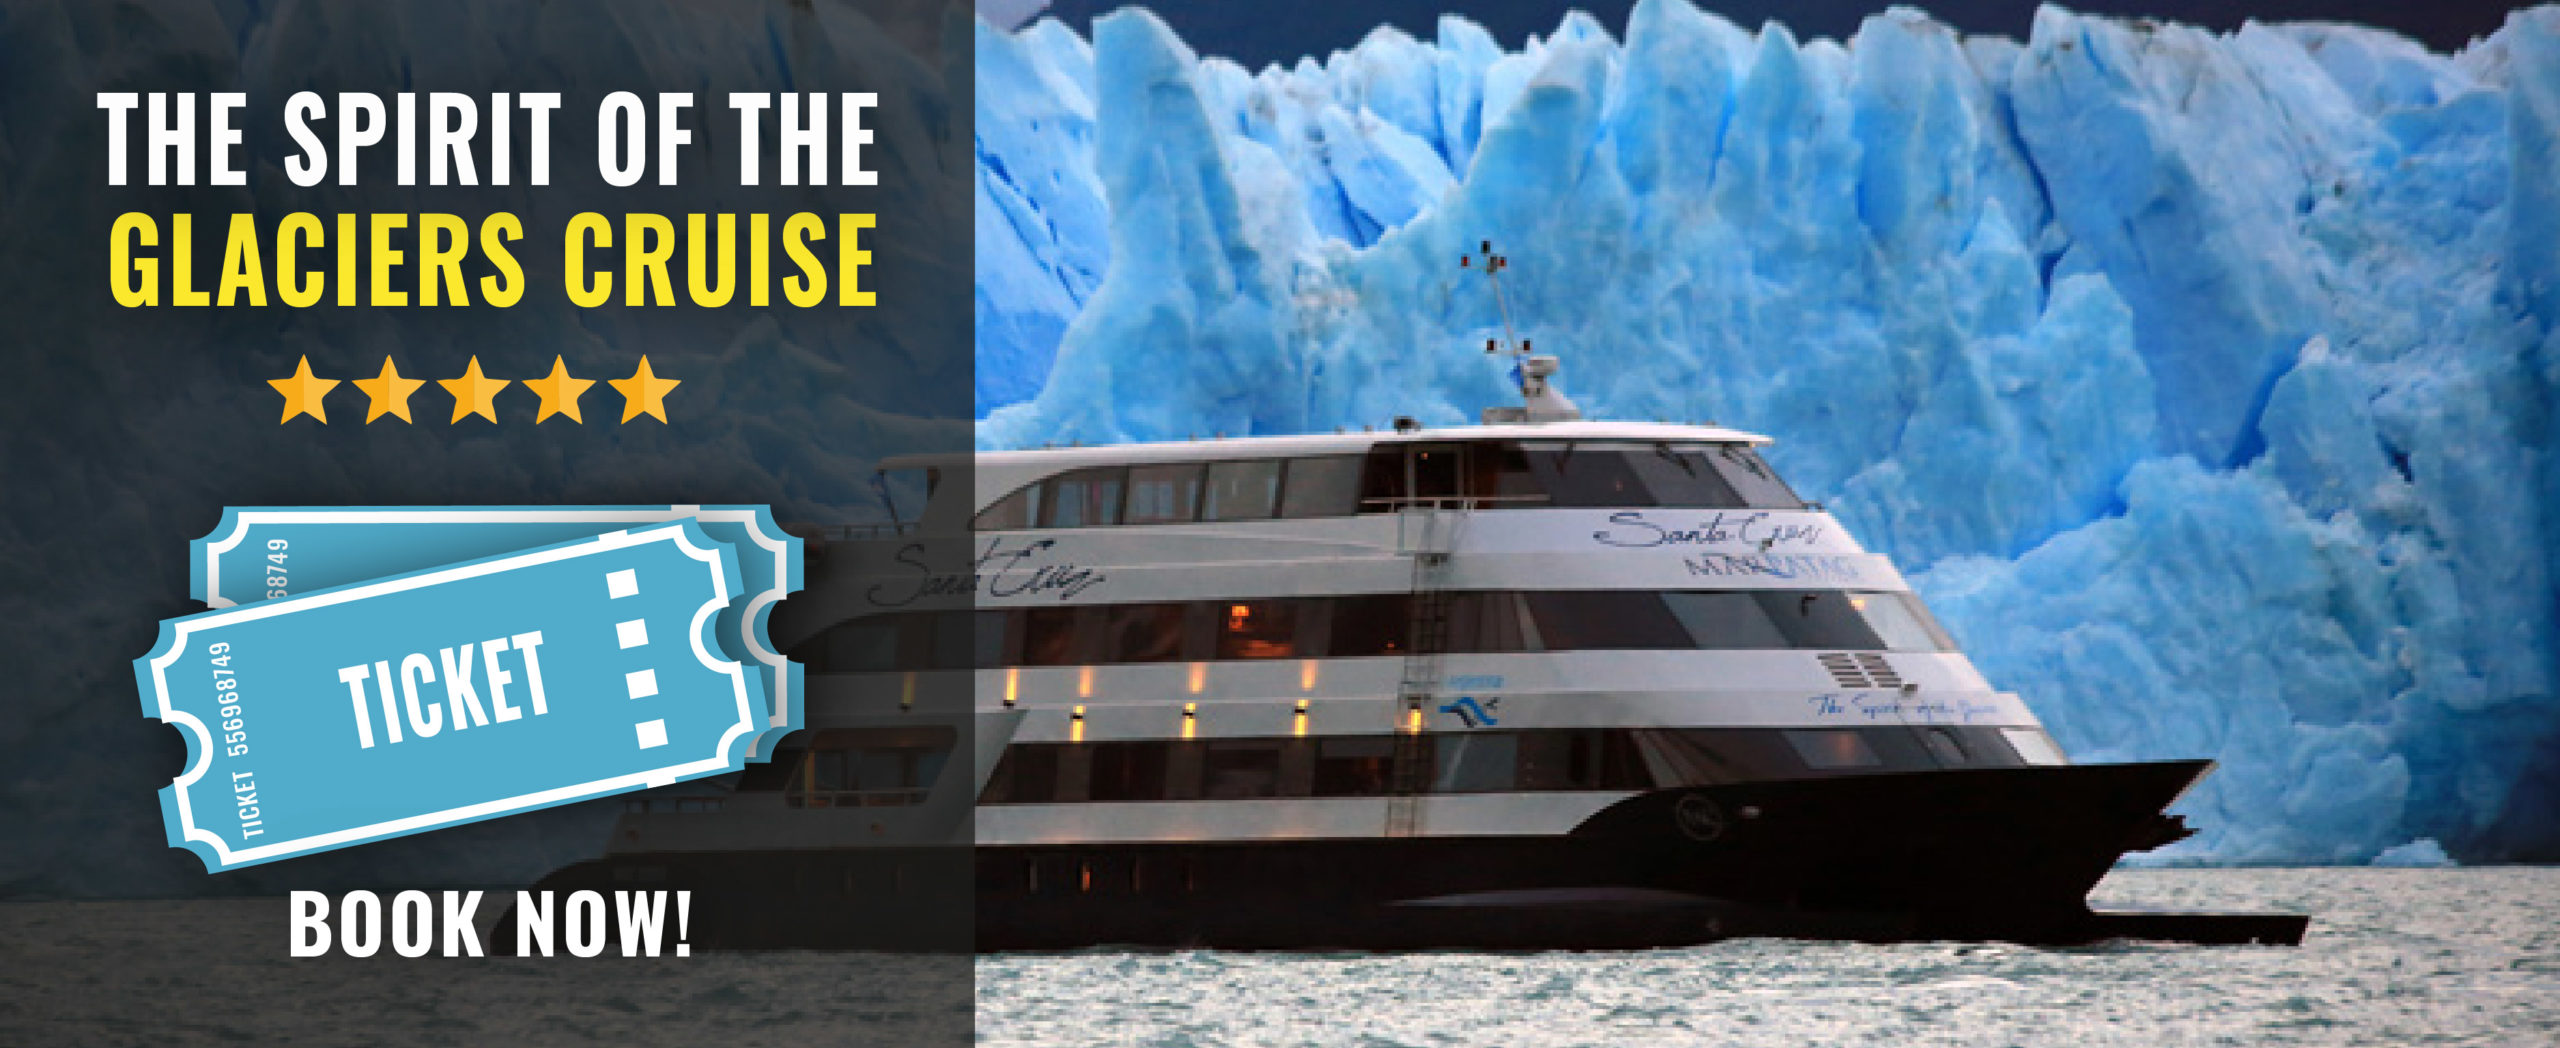 TICKETS SPIRIT OF THE GLACIERS CRUISE IN PATAGONIA